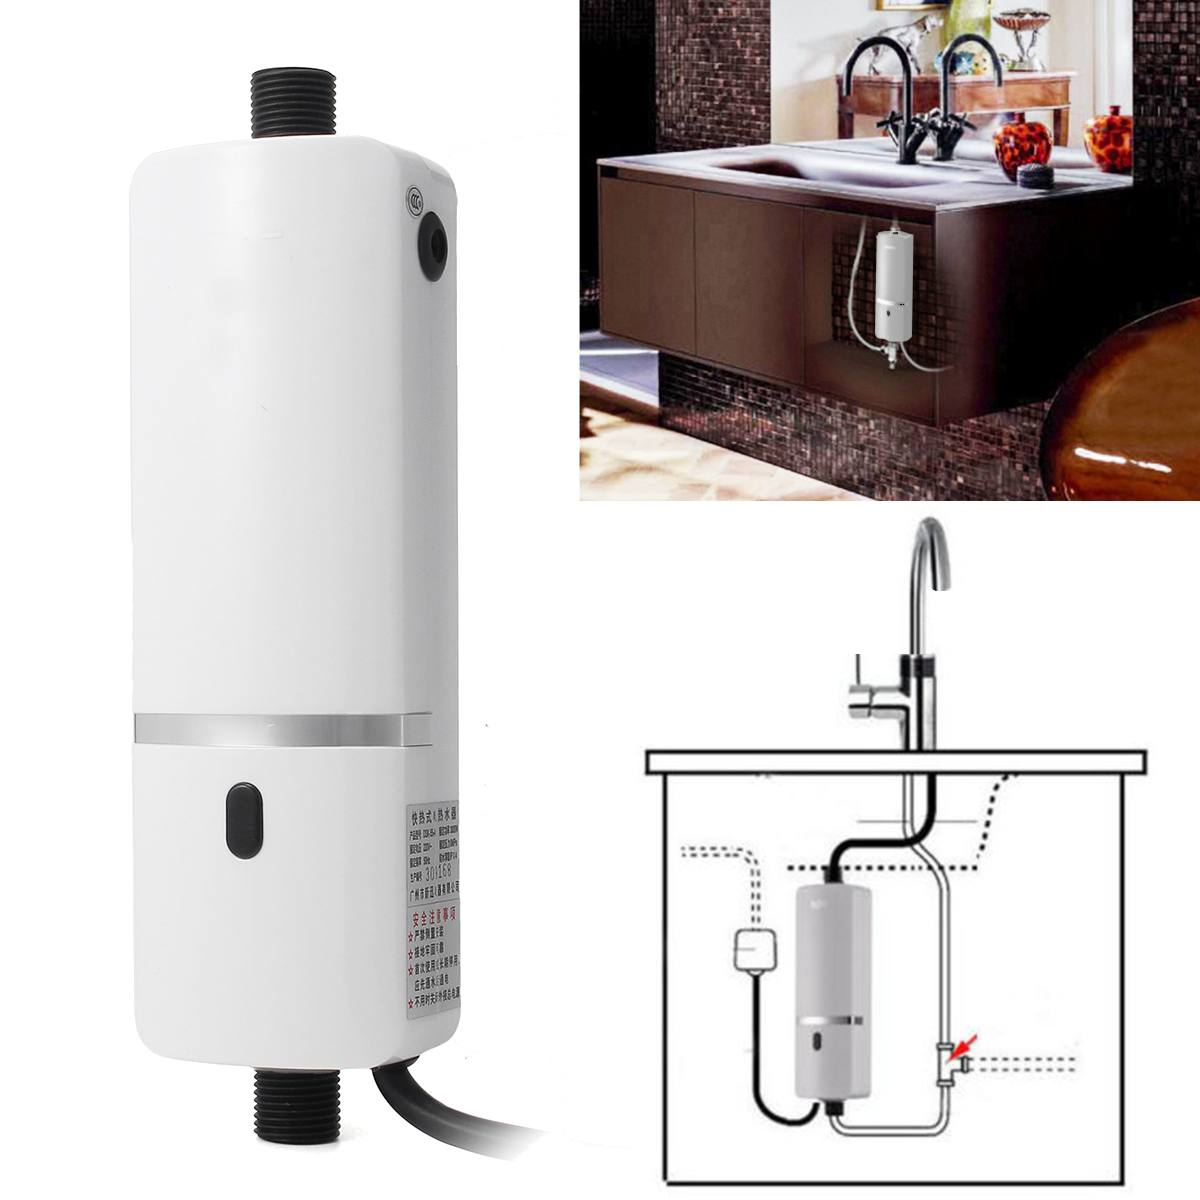 220-240V 3000W Instant Electric Tankless Water Heater Shower System Under Sink Tap Faucet  For Kitchen Bathroom Water Heater